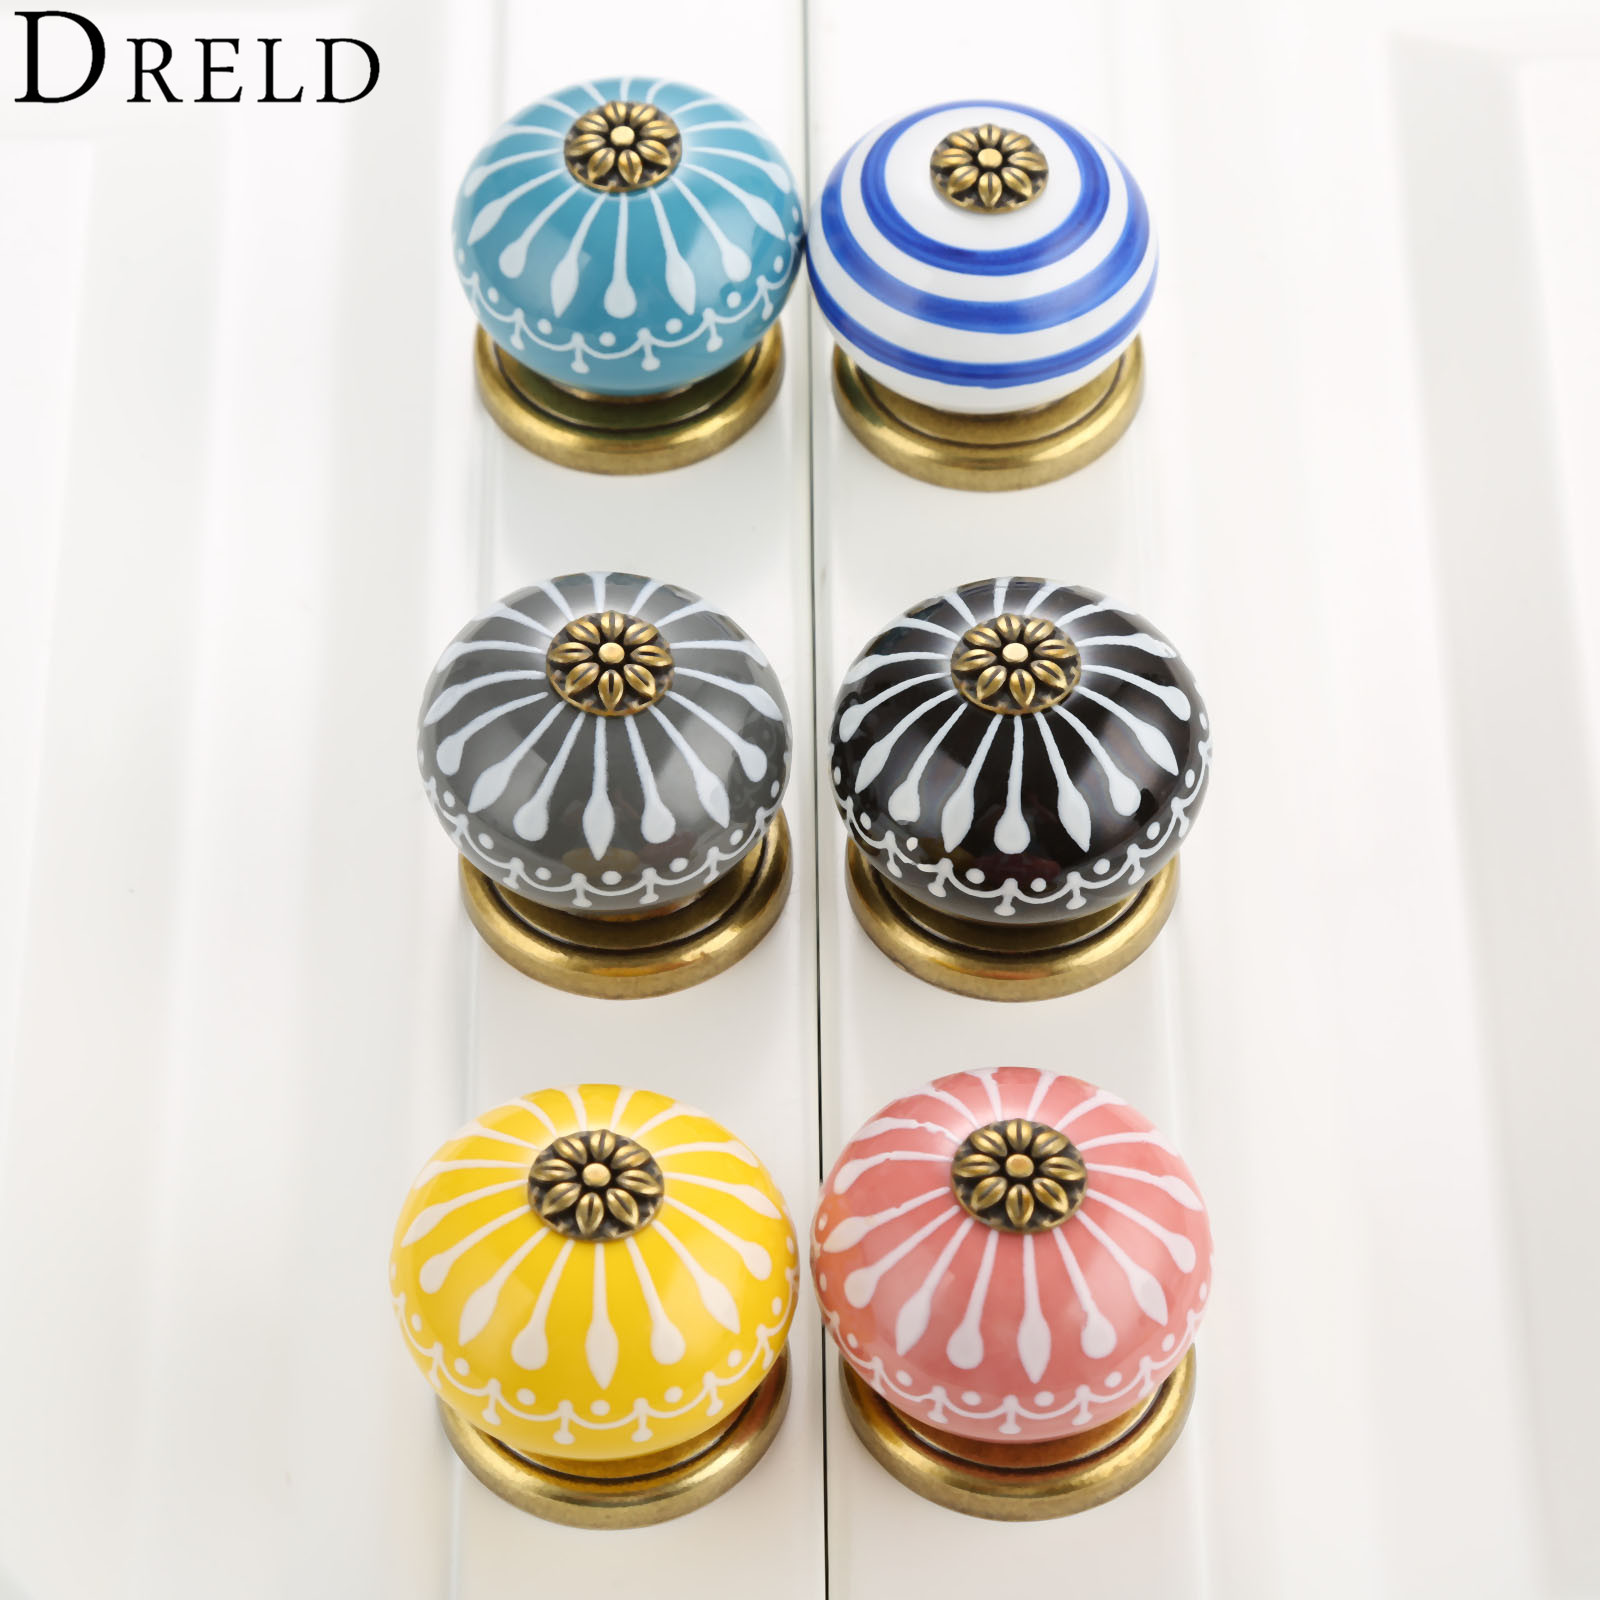 DRELD Ceramic Round Furniture Handles Cabinet Knobs and Handles Door Knobs Cupboard Drawer Kitchen Pull Handle Home Decoration luxury gold czech crystal round cabinet door knobs and handles furnitures cupboard wardrobe drawer pull handle